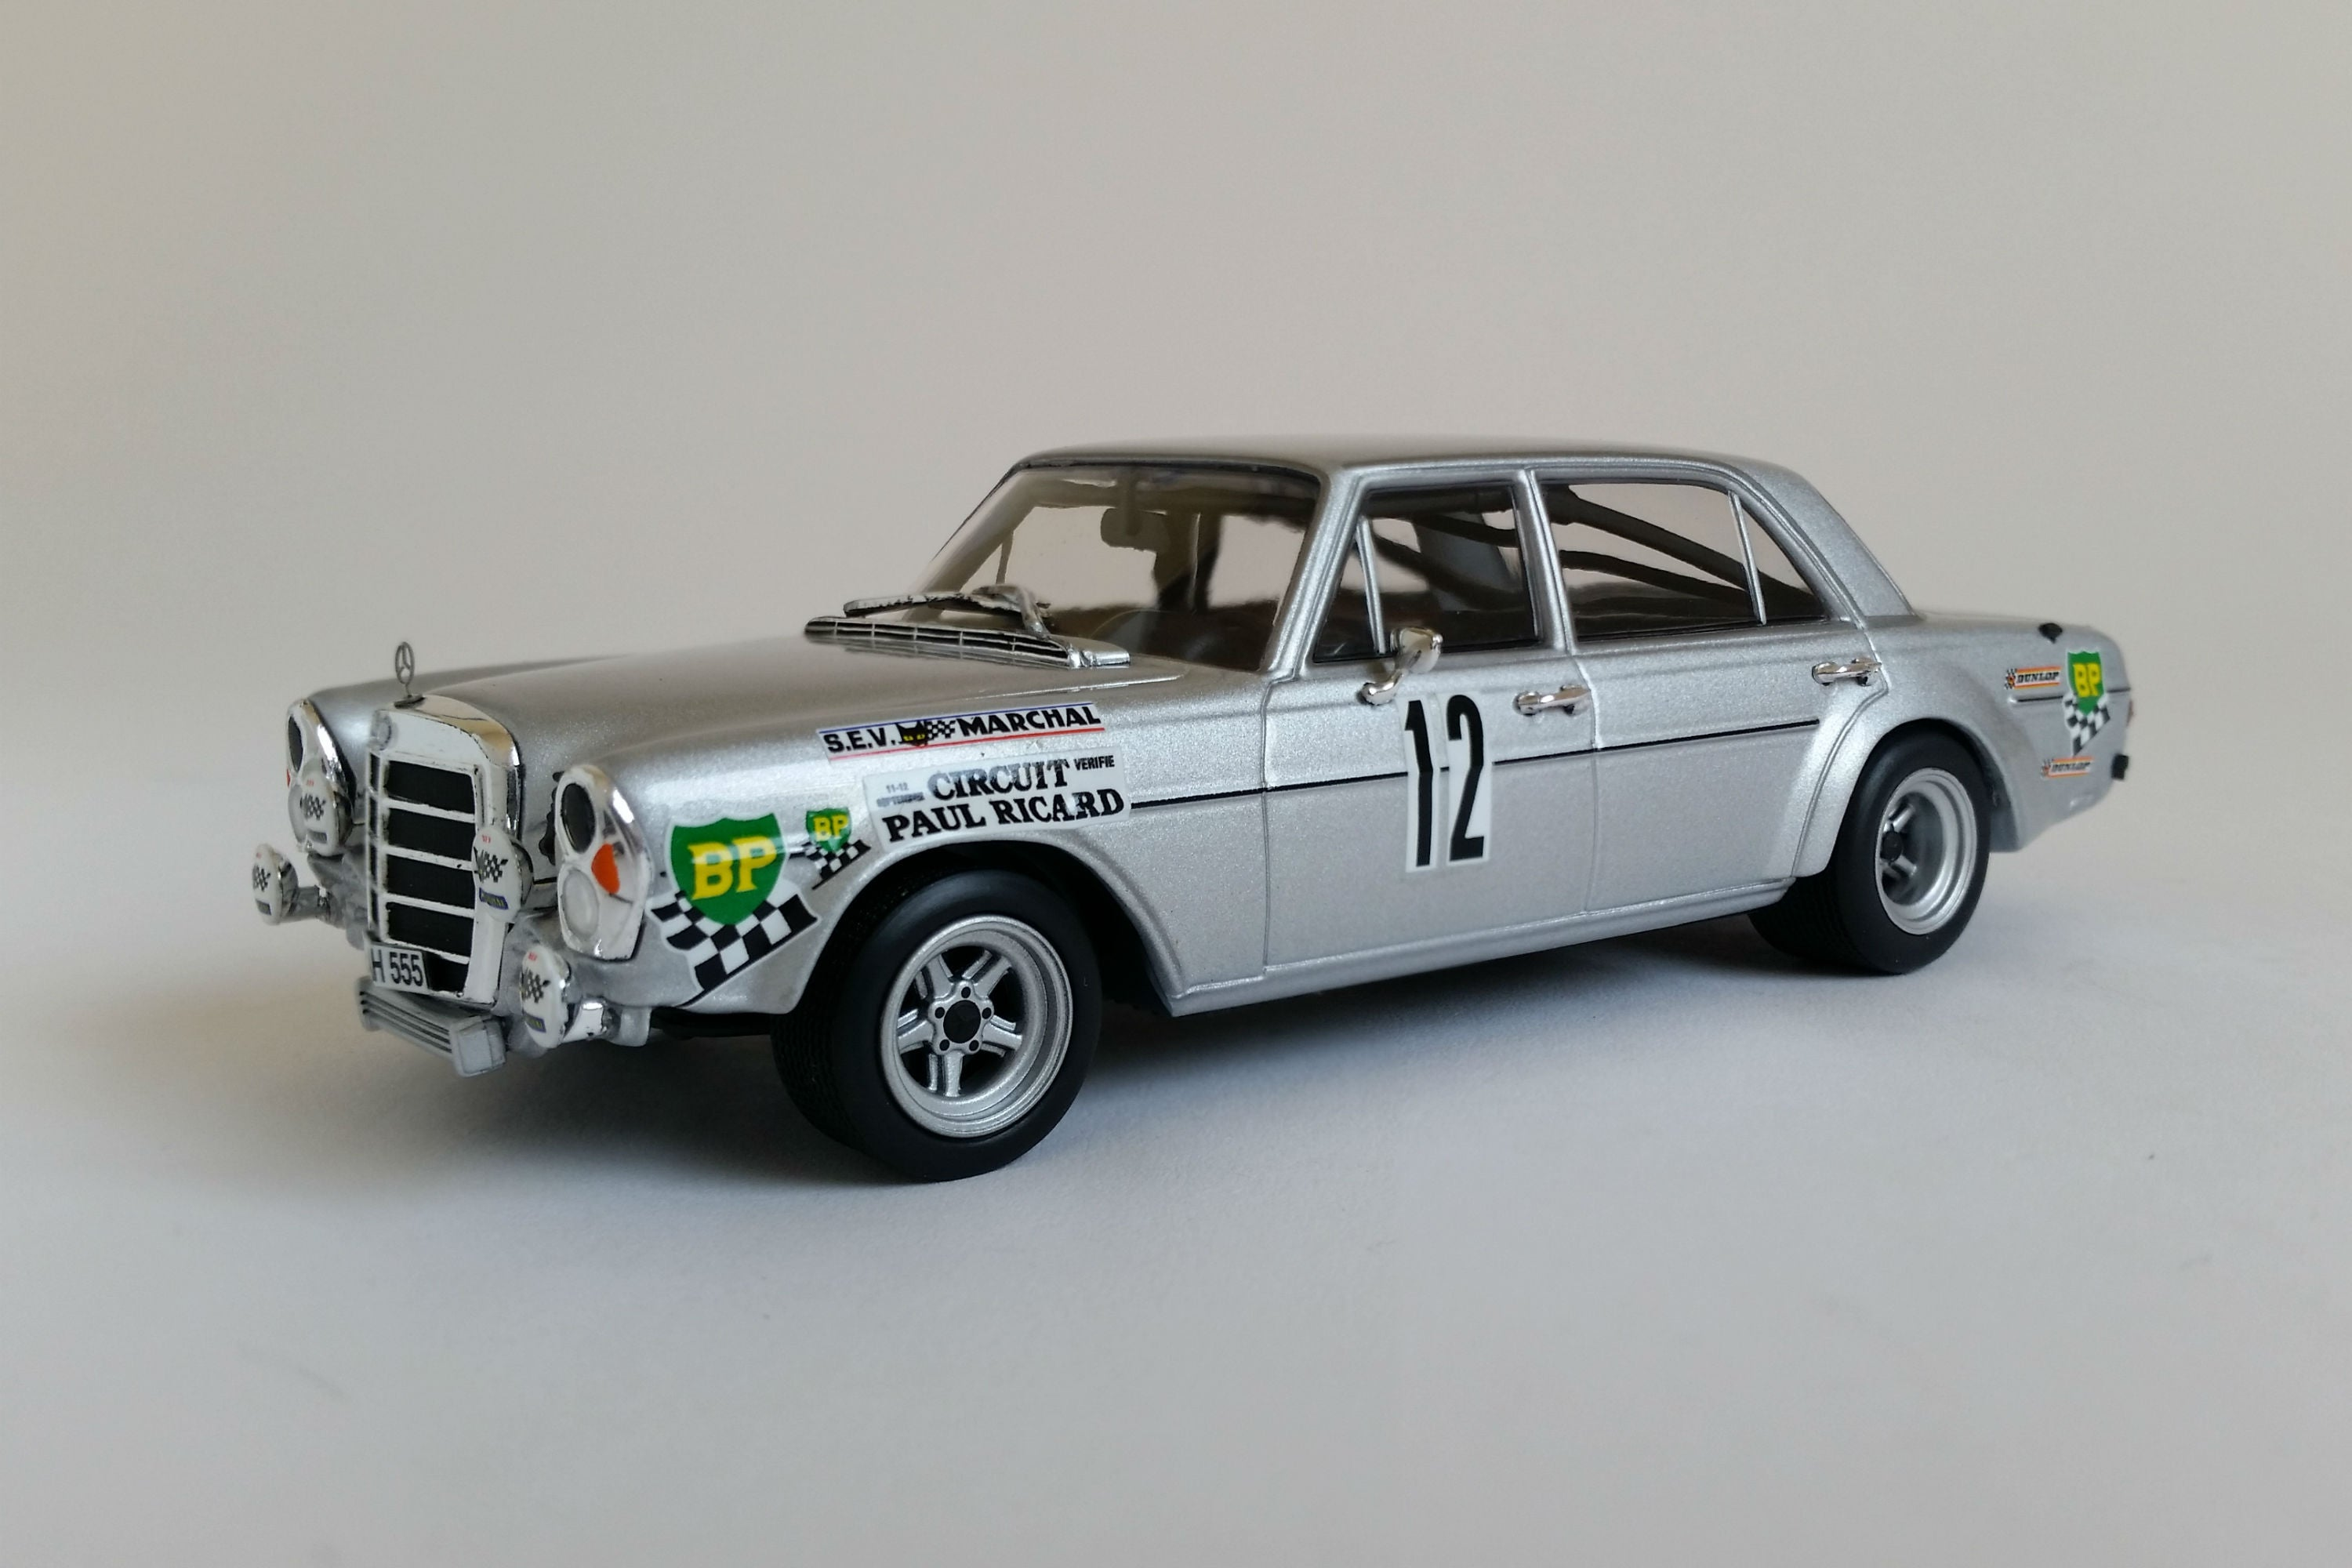 Mercedes-Benz 300SEL 6.8 AMG | 1:43 Scale Diecast Model Car by Minichamps | Front Quarter